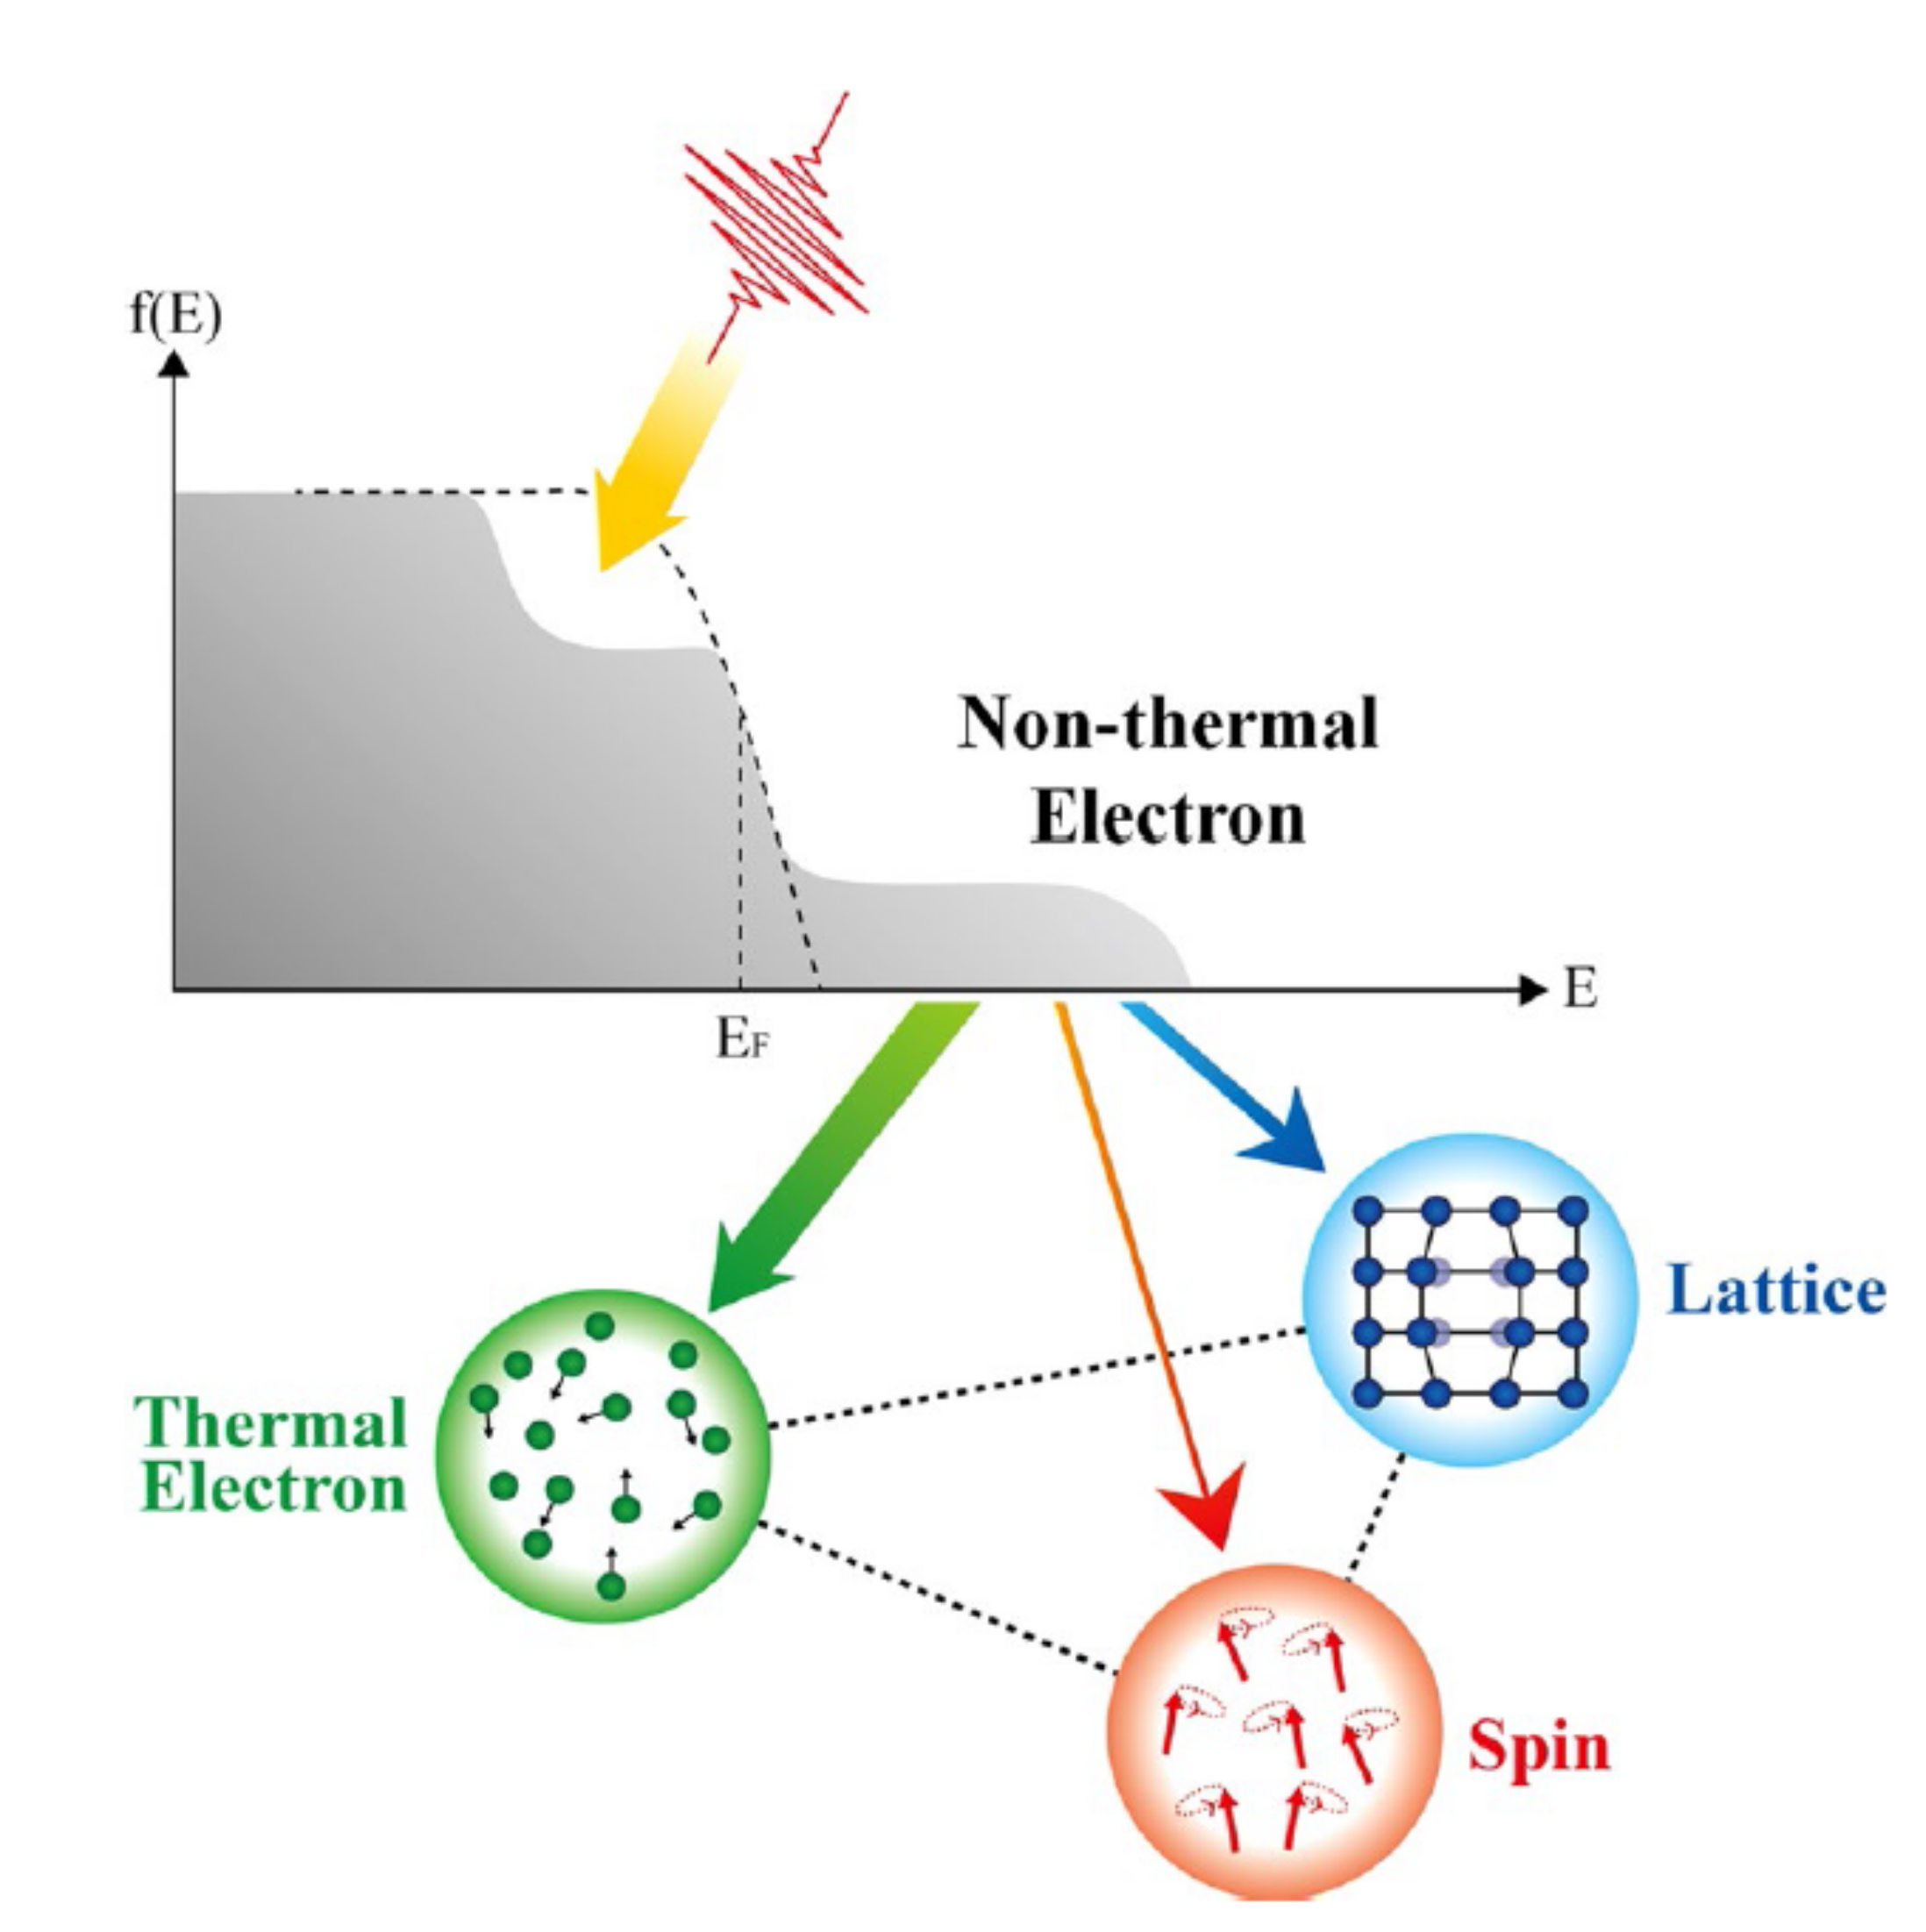 Fig. 7. Schematic of energy interaction among nonthermal electron, thermal electron, lattice, and spin subsystems.[10]